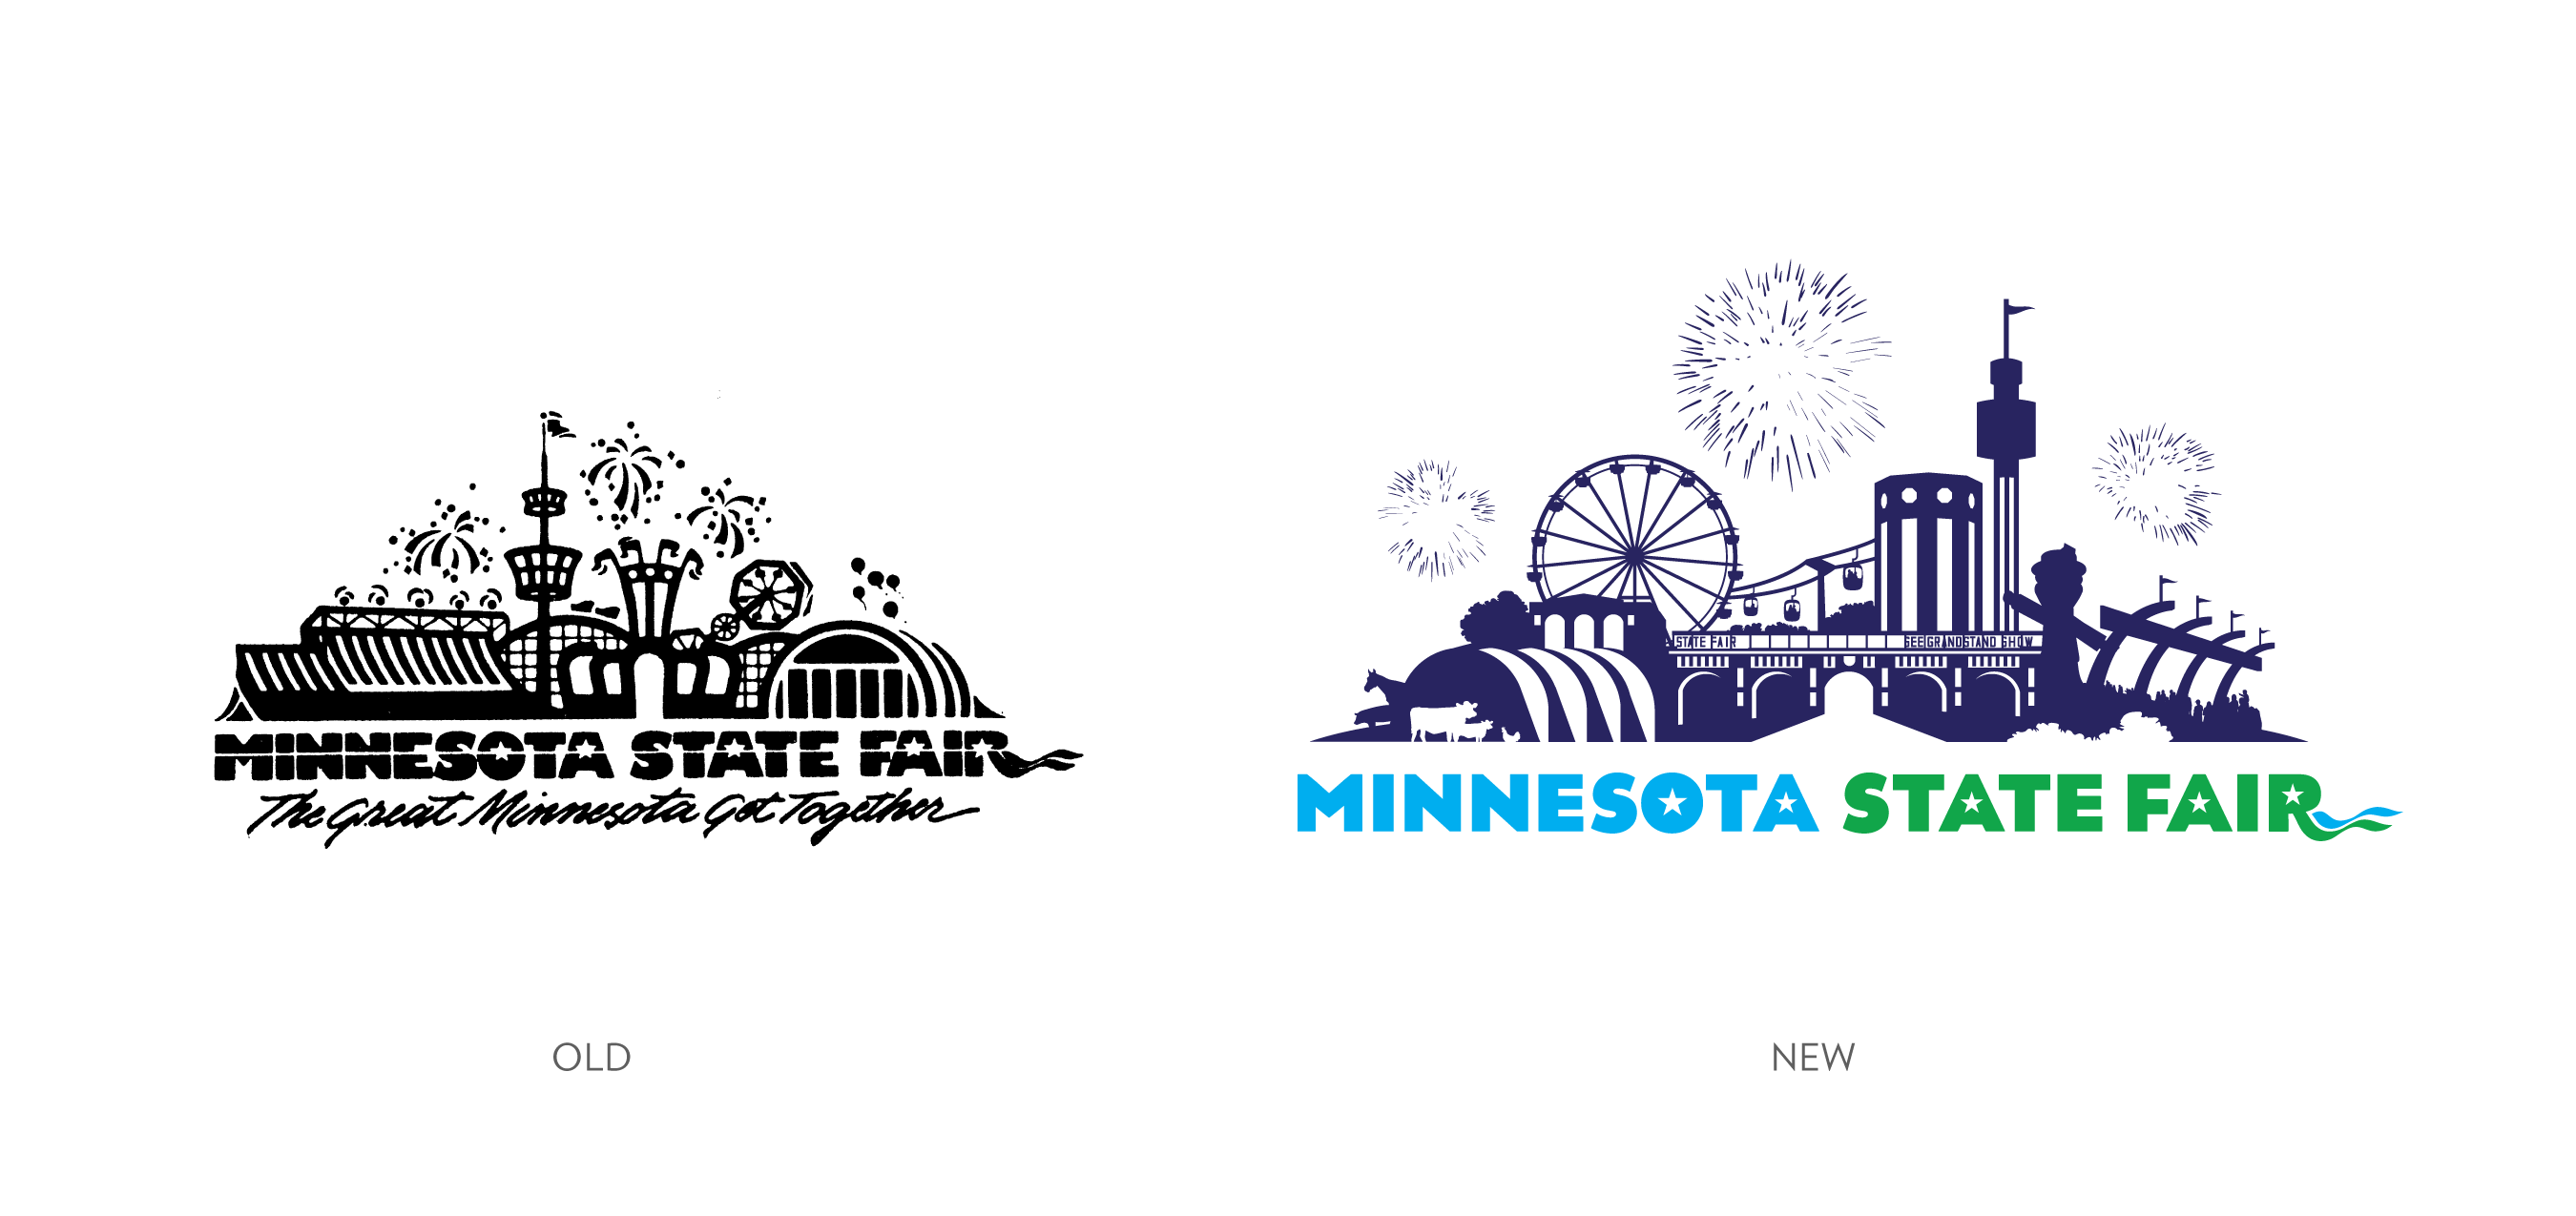 The Minnesota State Fair - Replace